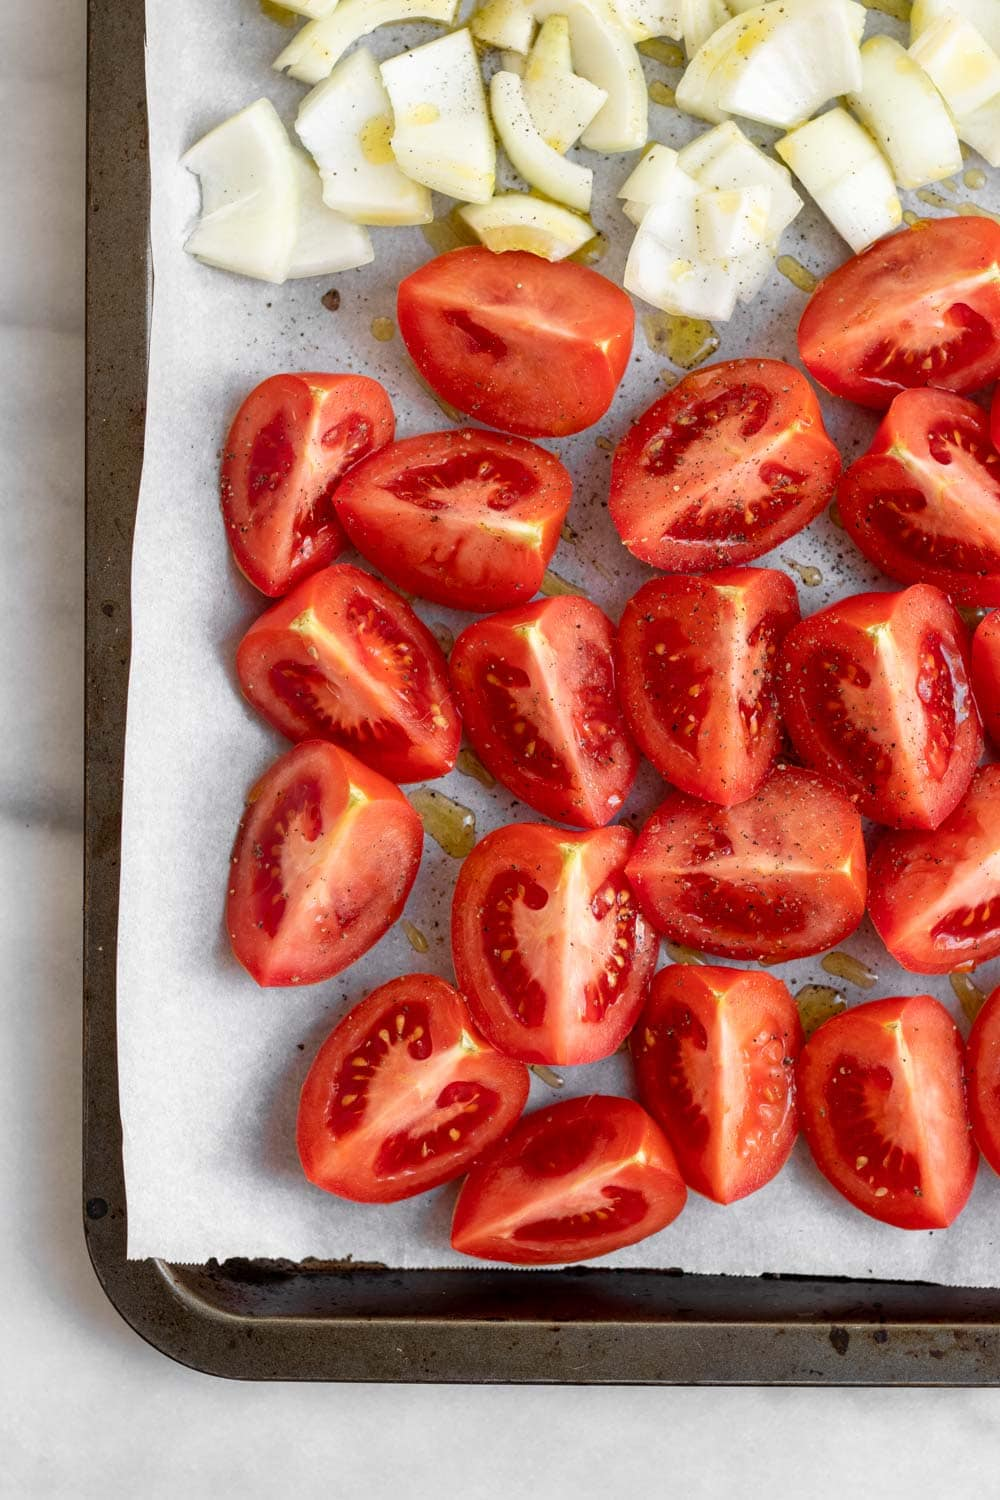 Fresh tomatoes chopped on a baking sheet.